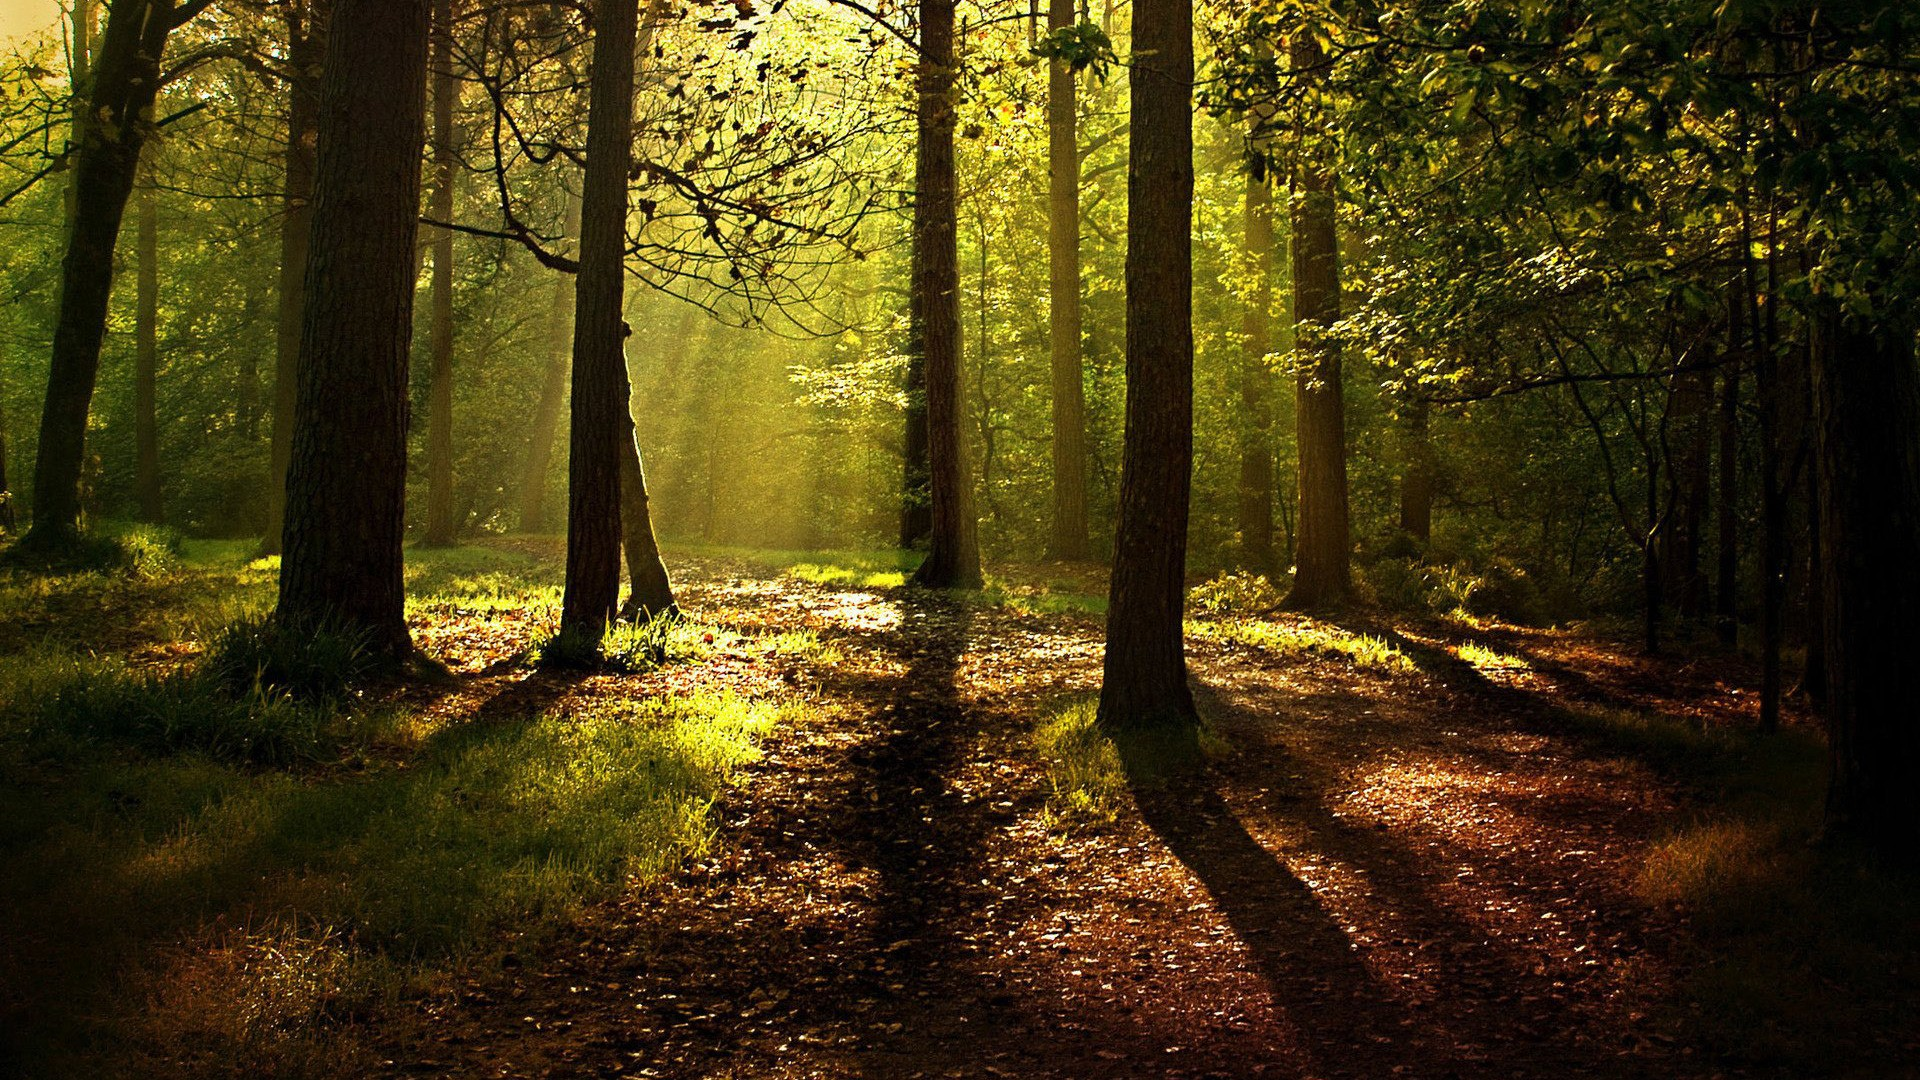 General 1920x1080 nature trees forest branch wood mist leaves sunlight shadow